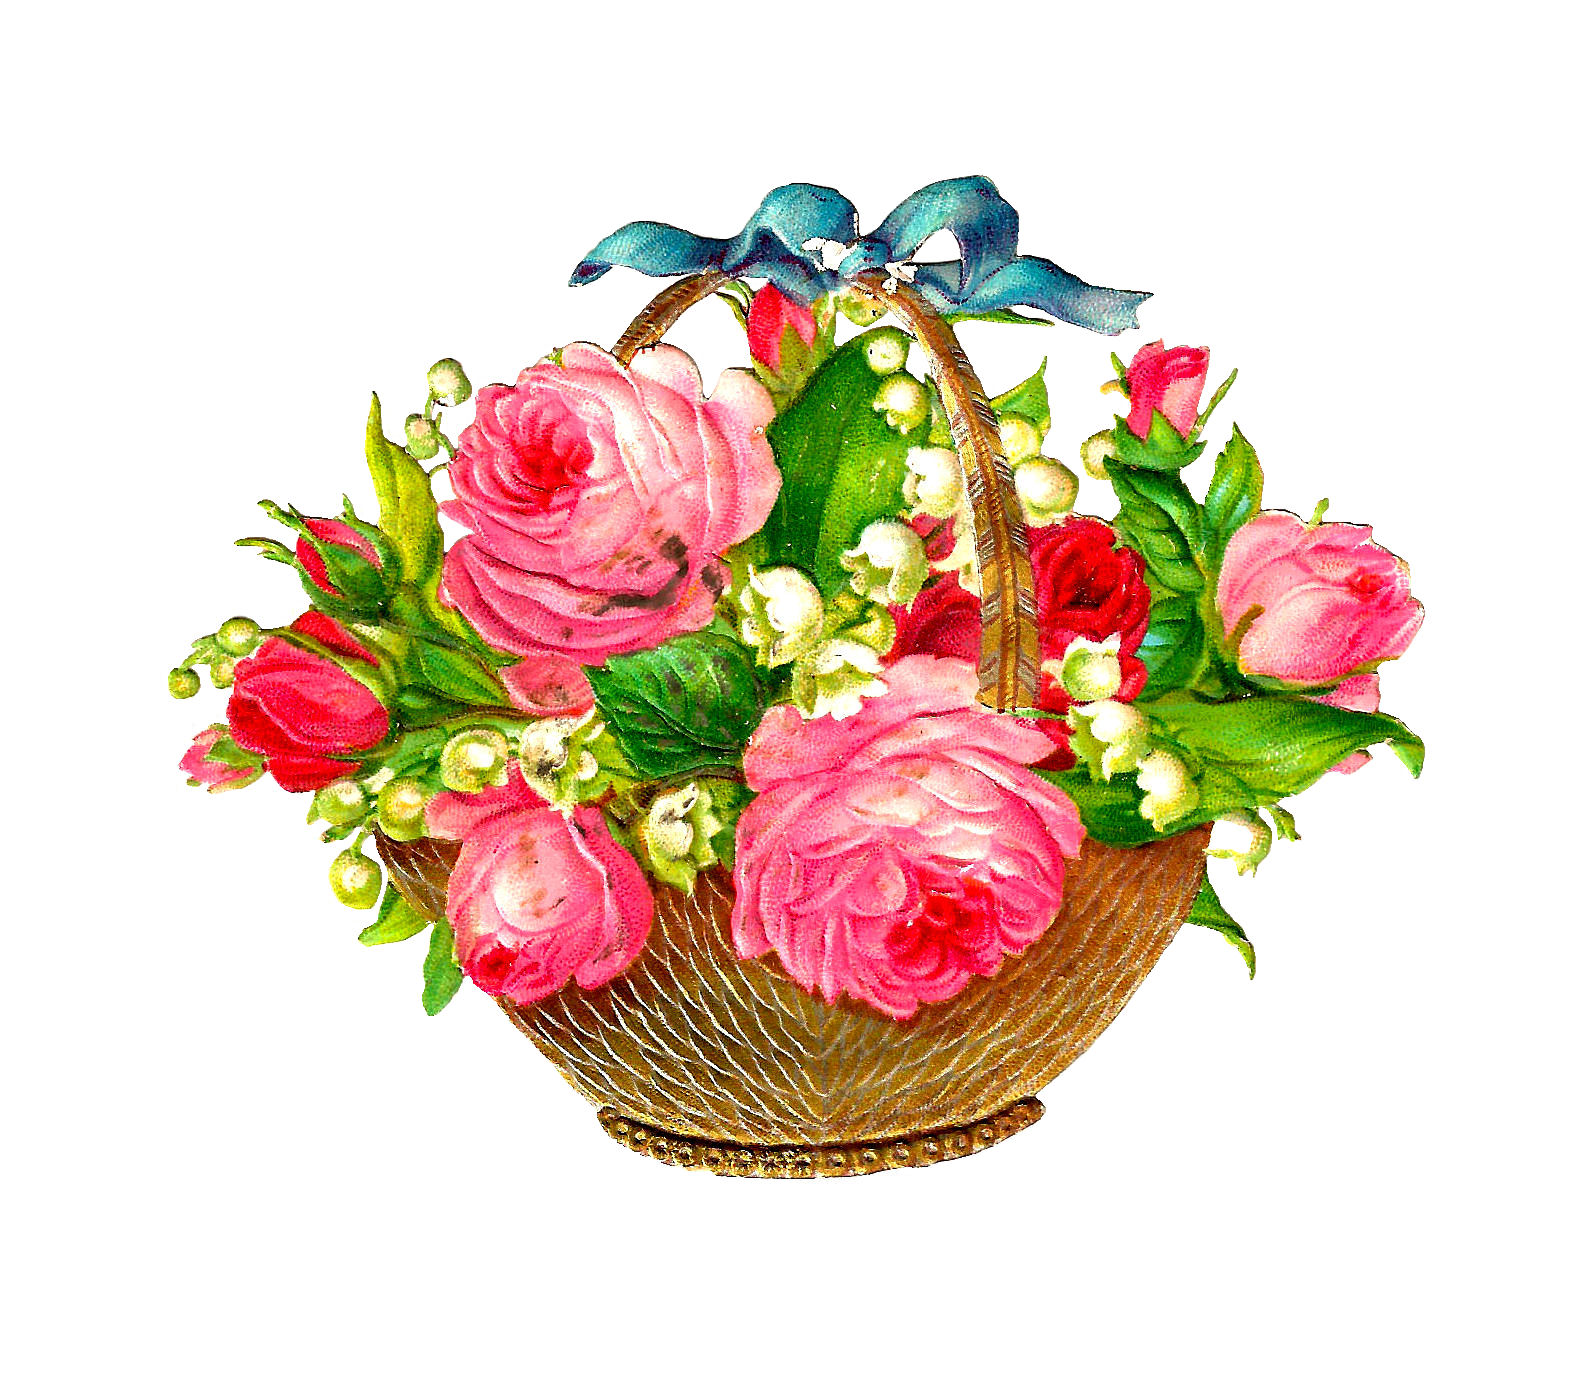 Antique Free Flower Basket Graphic Pink Roses and Lily of the Valley